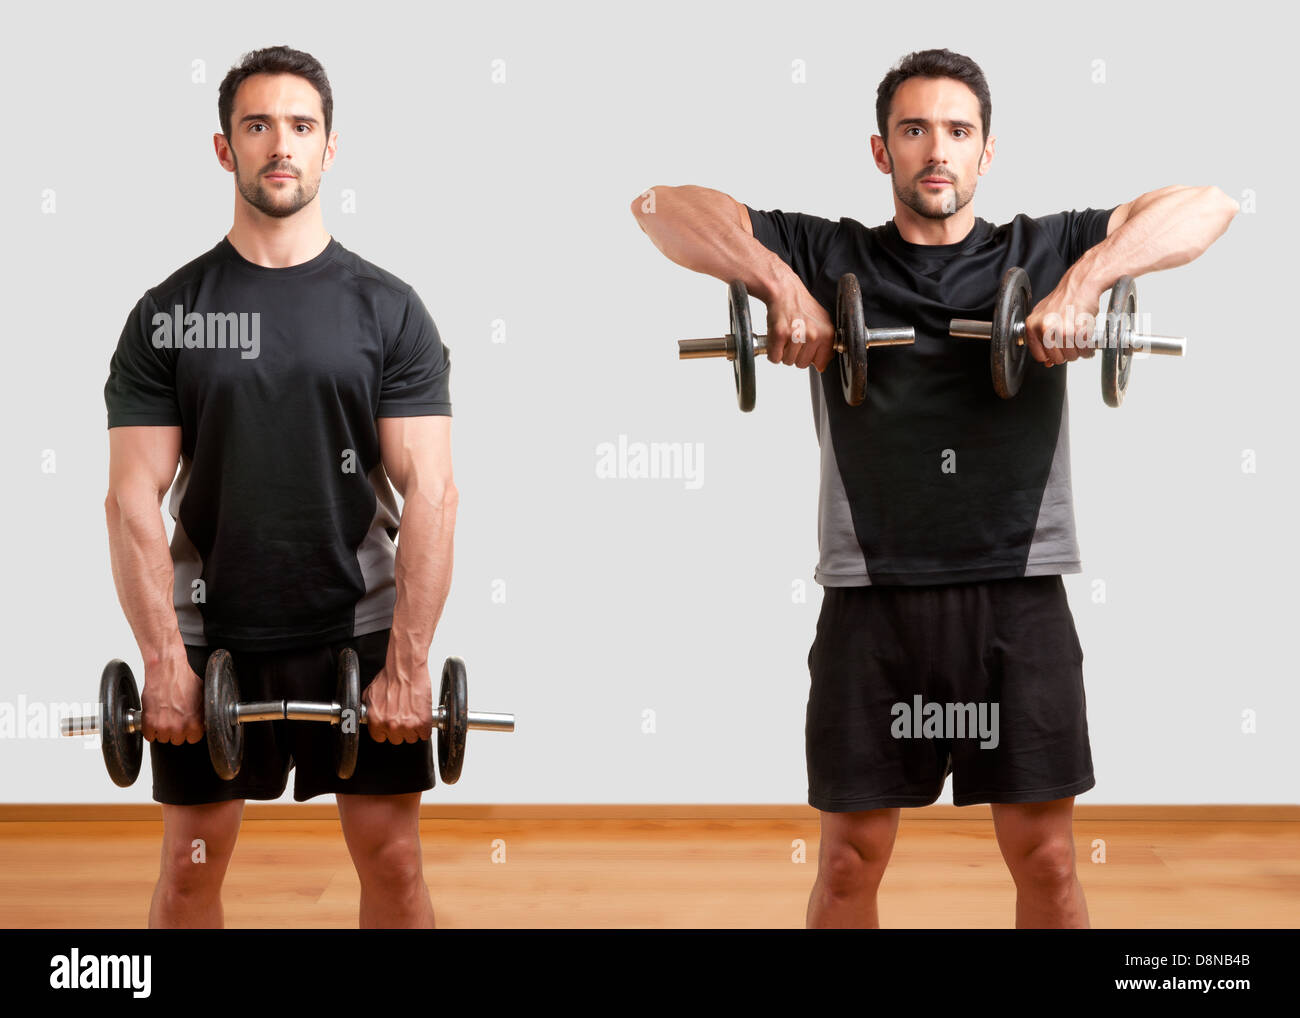 Personal Trainer doing dumbbell upright row for training his deltoids Stock Photo